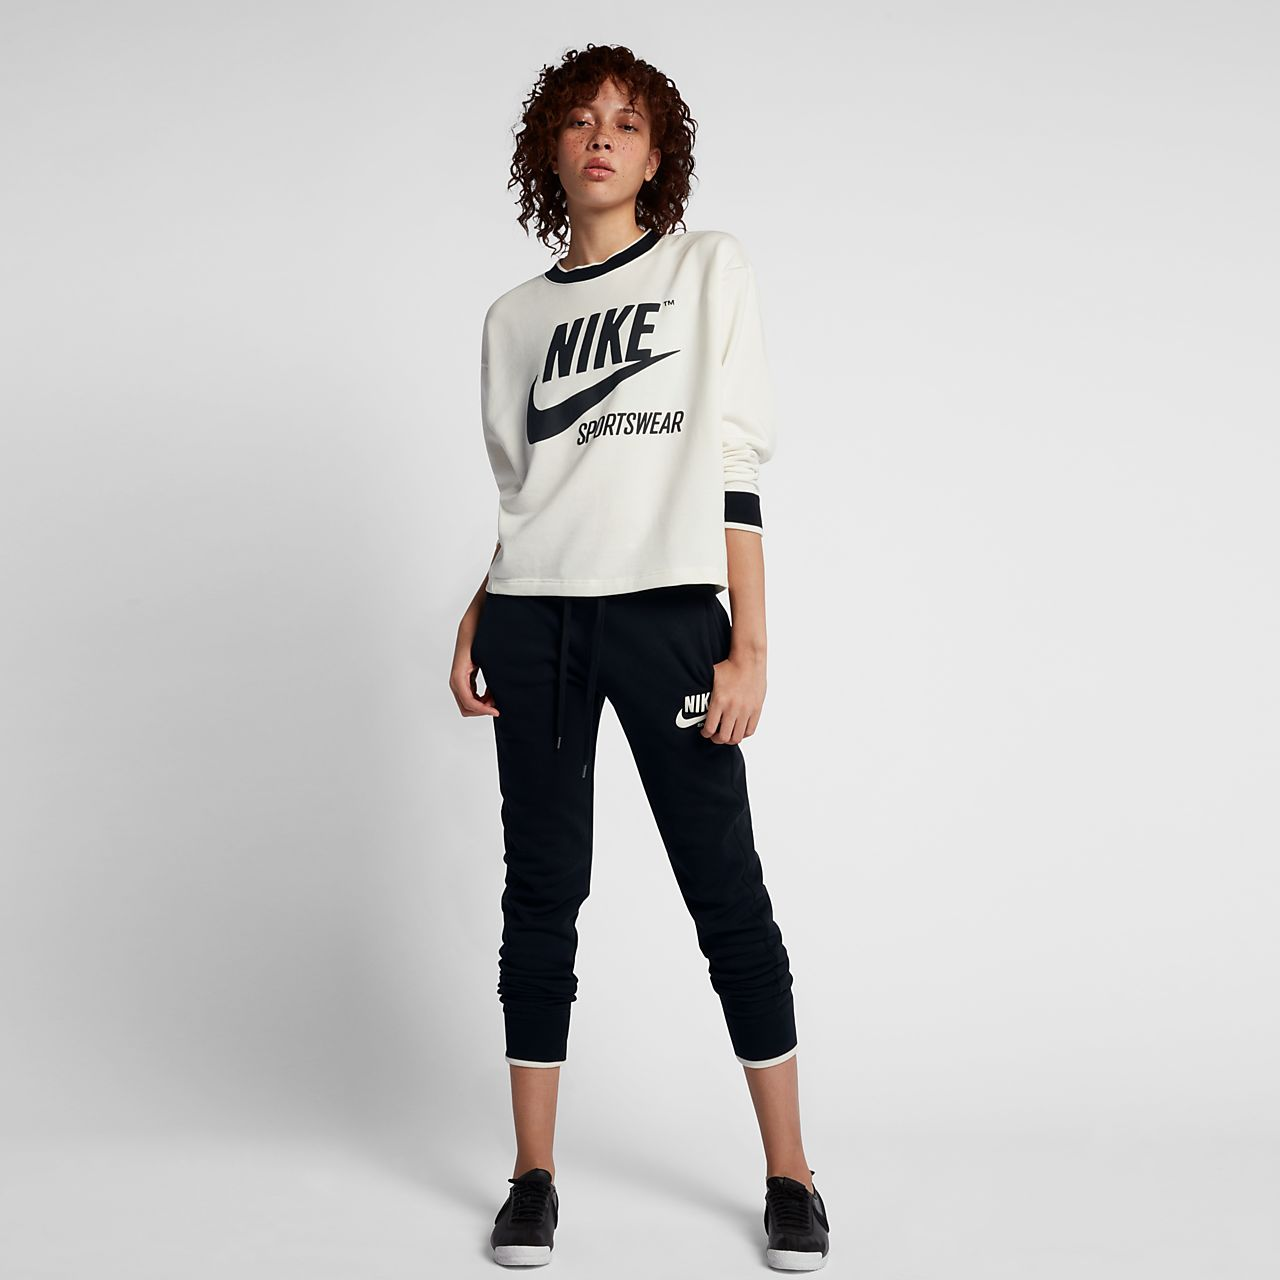 Low Resolution Nike Sportswear Archive Women's Crew Nike Sportswear Archive  Women's Crew